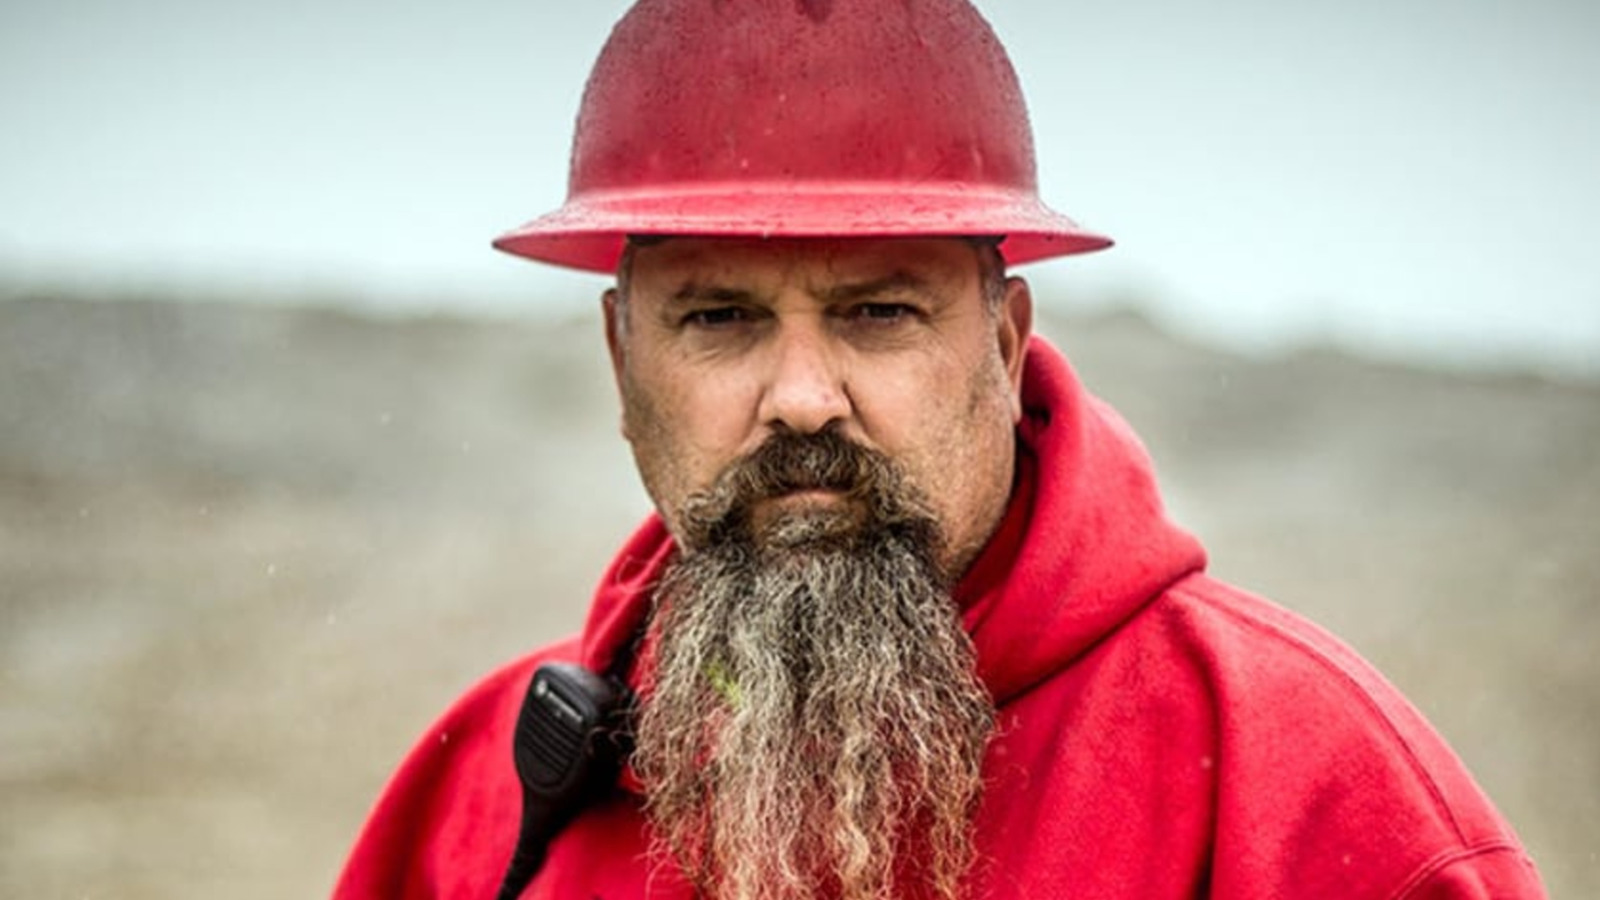 Gold Rush Star Jesse Goins Dead at 60: Social Media Reacts